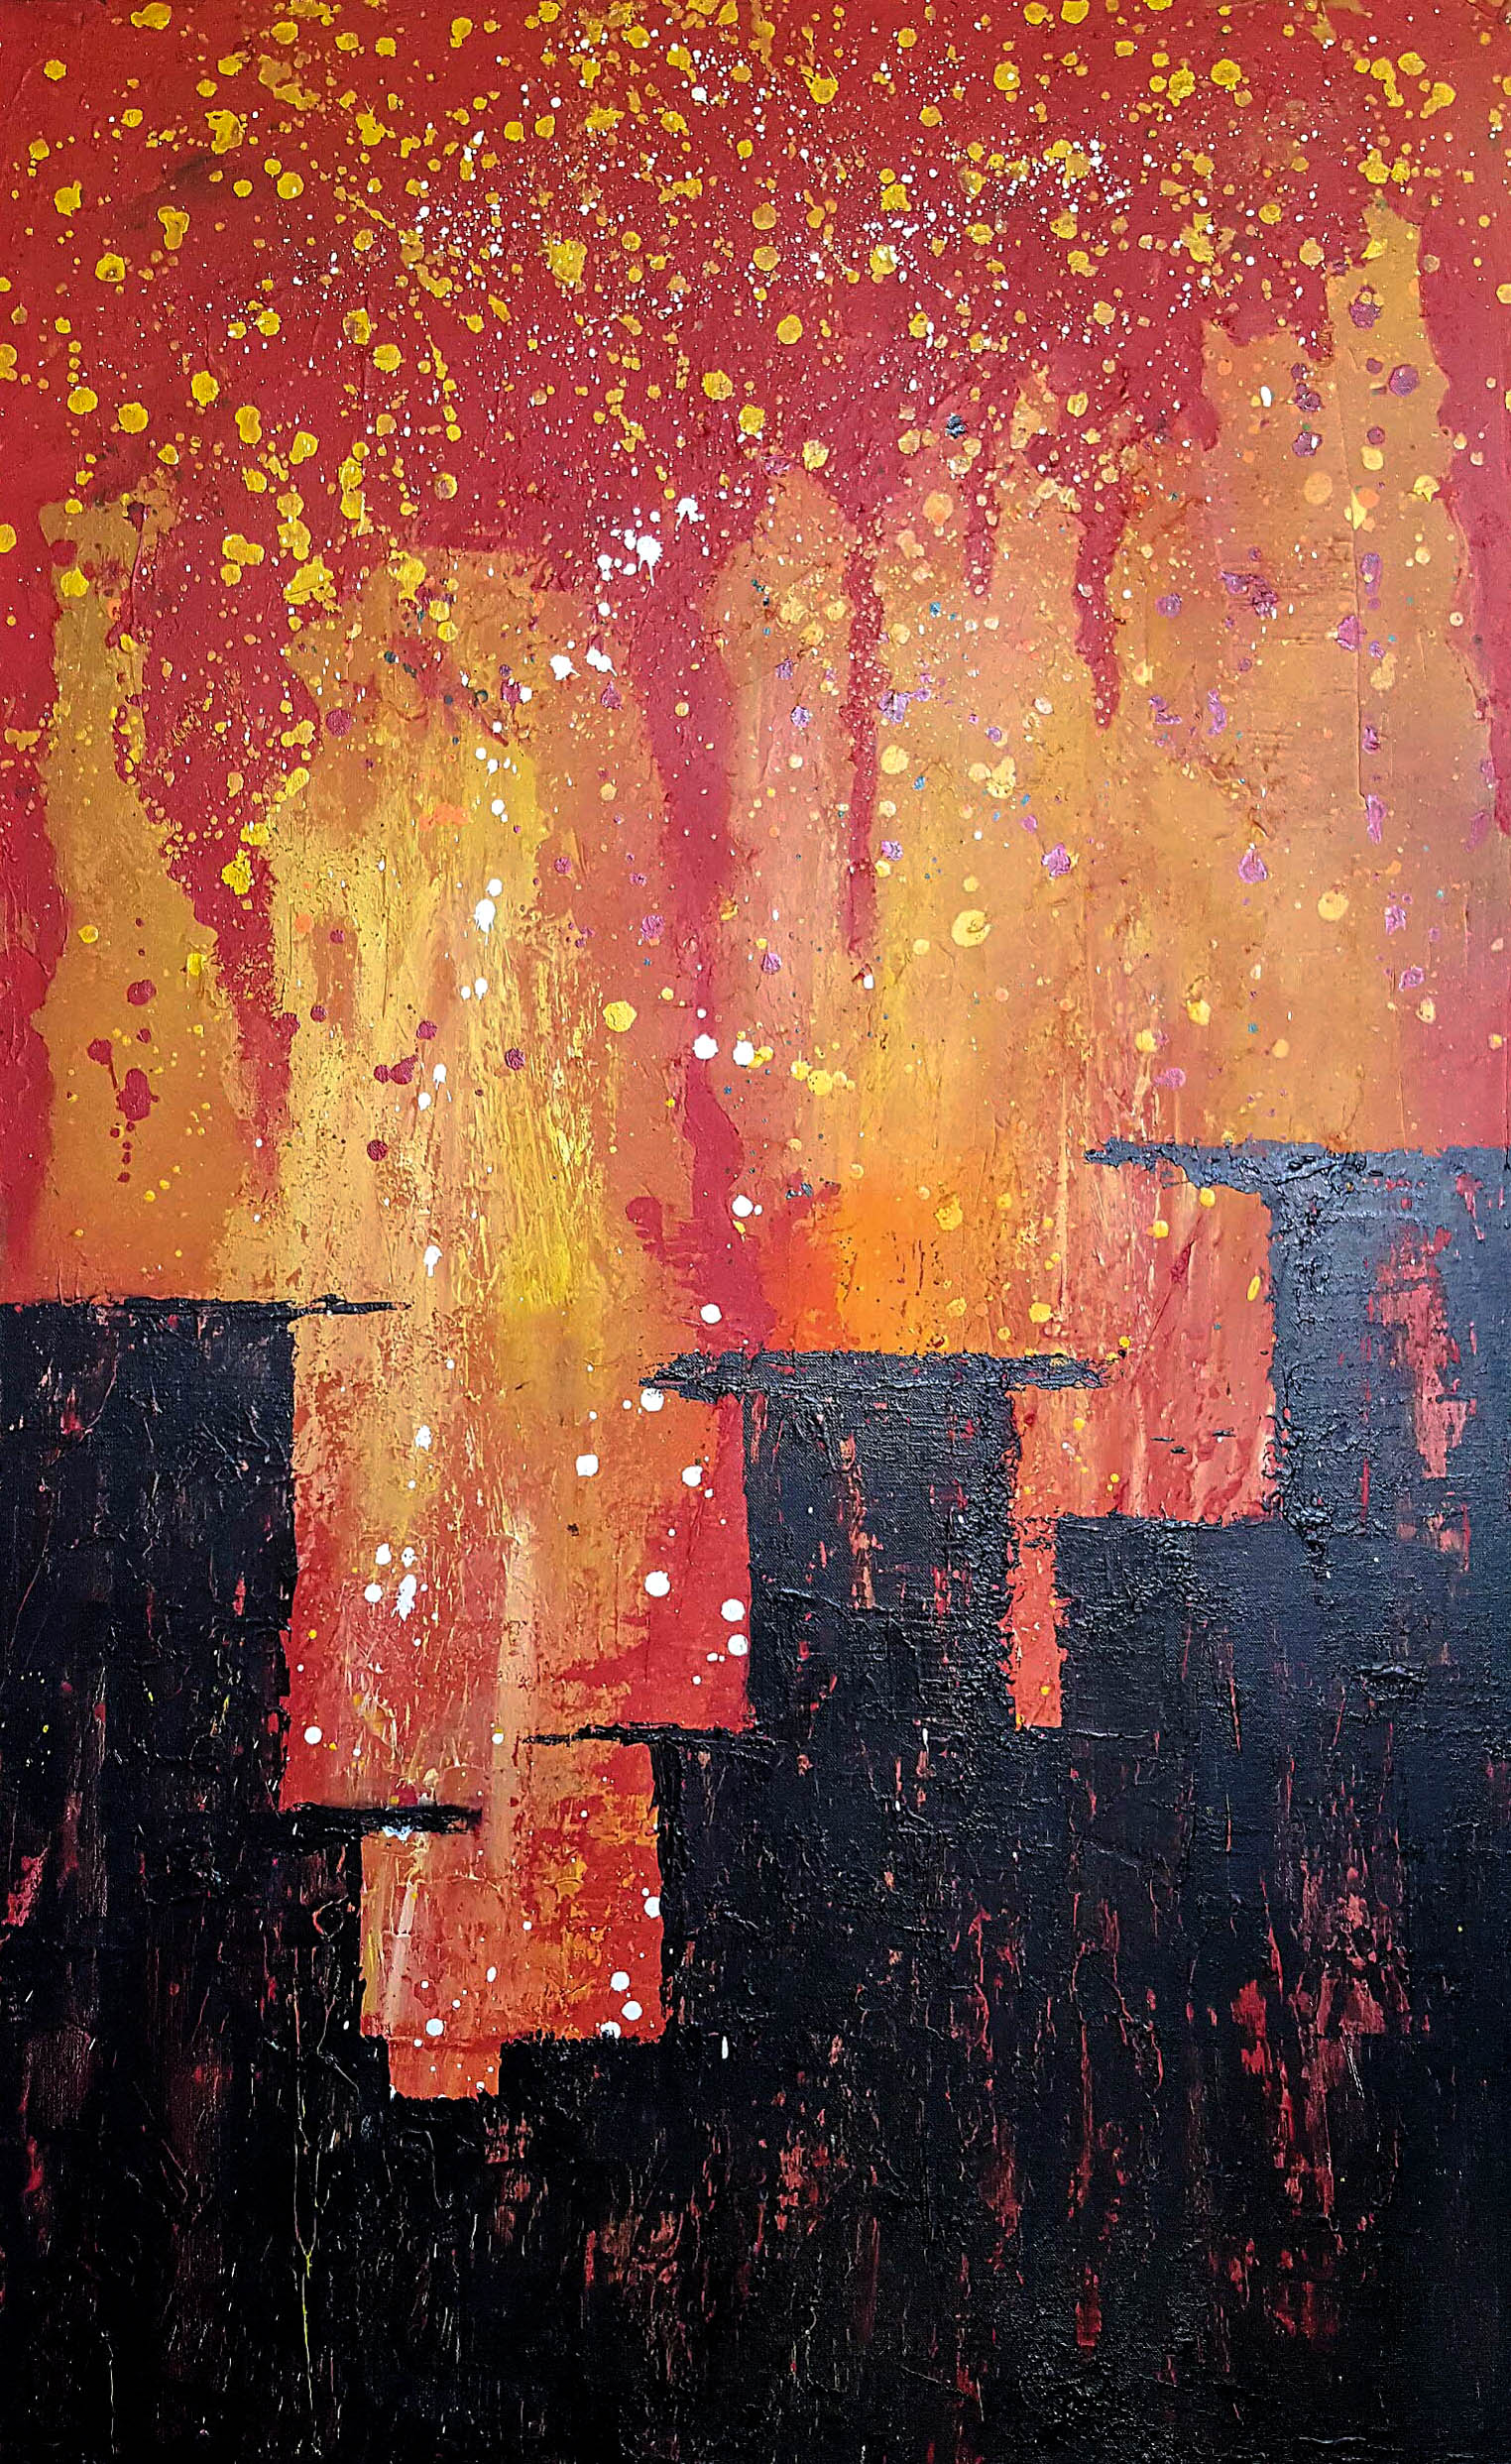 city on fire painting